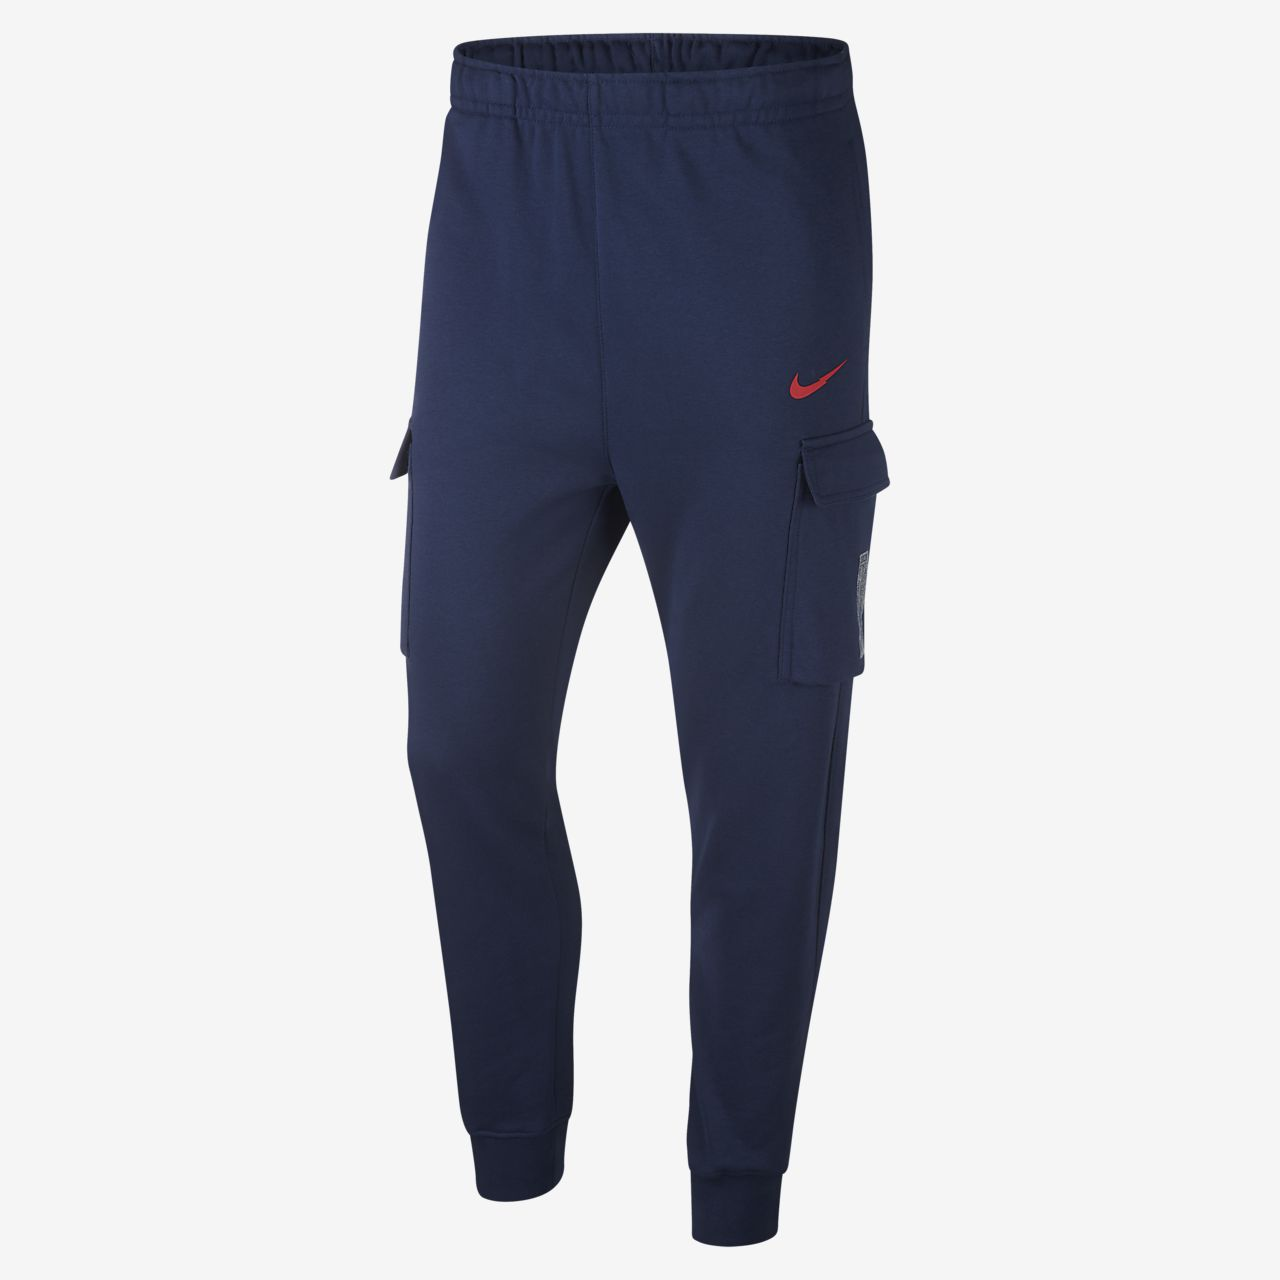 Nike Sportswear Men's Cargo Trousers